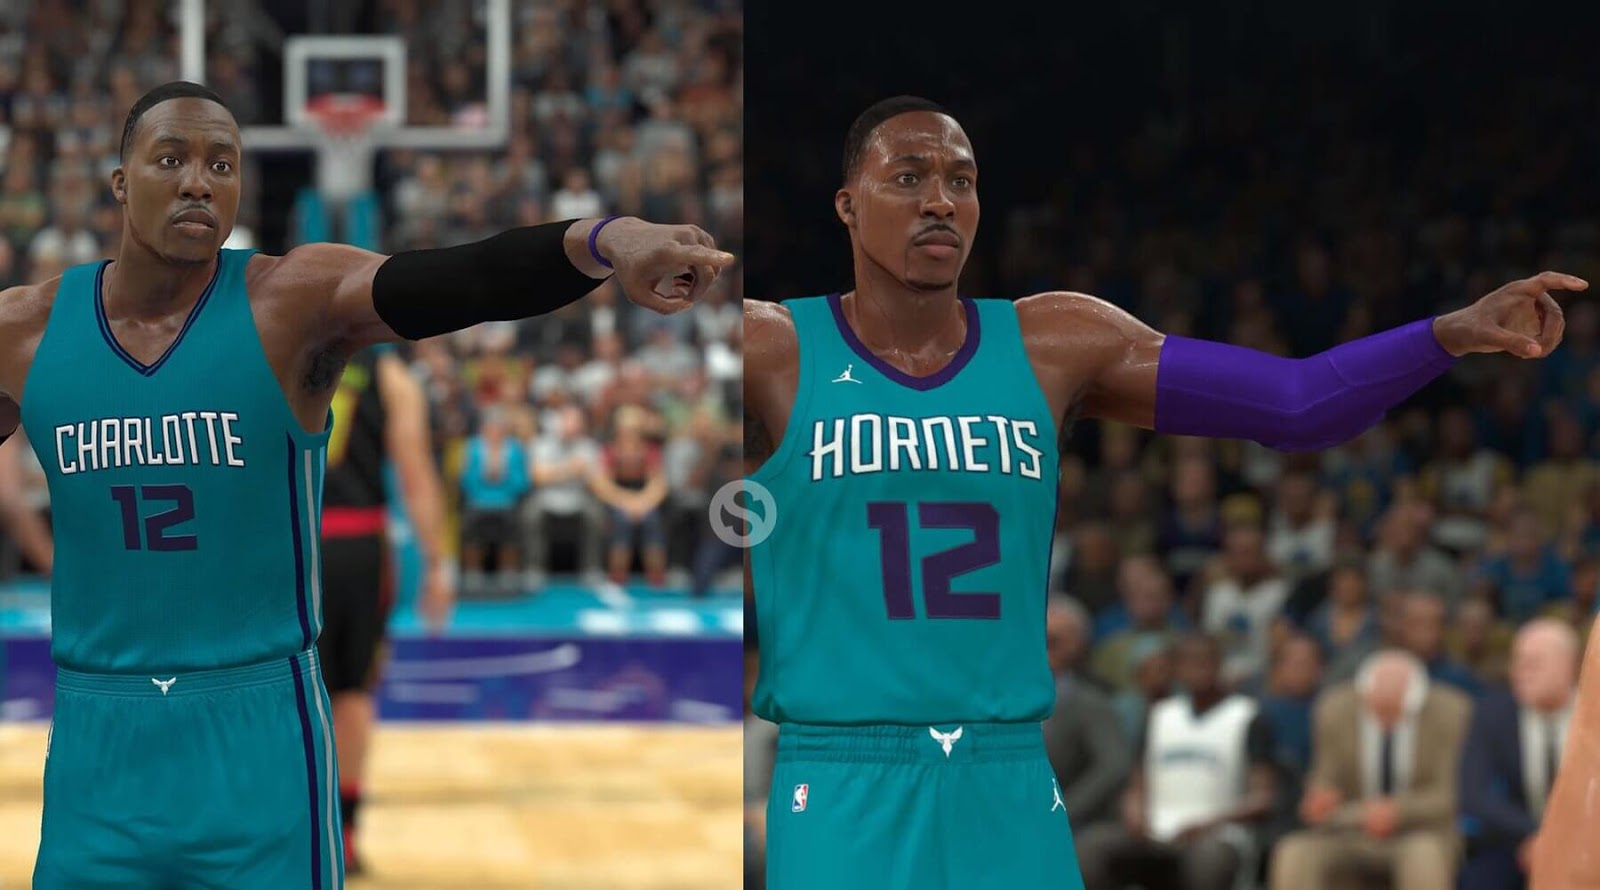 NBA 2k18 NBA 2k17 Screenshot Comparison - Dwight Howard